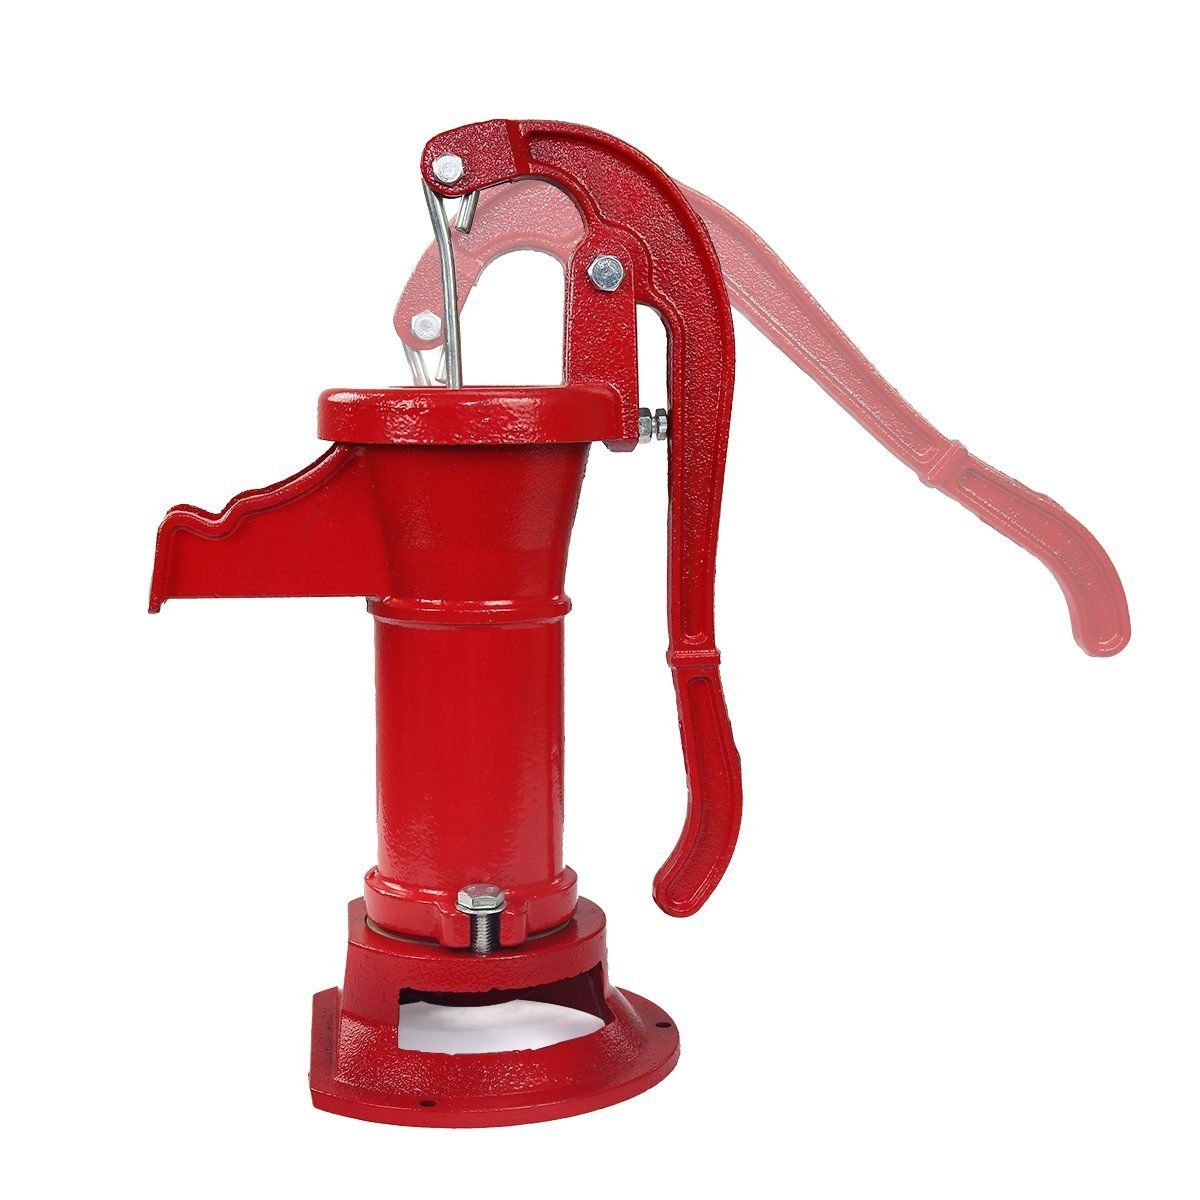 COLIBROX--New Antique Style Heavy Duty Cast Iron Red Well Hand Operated Pitcher Pump 25 Ft. Designed for rugged long life service All parts are made from close grain cast iron for optimum strength. by COLIBROX (Image #5)